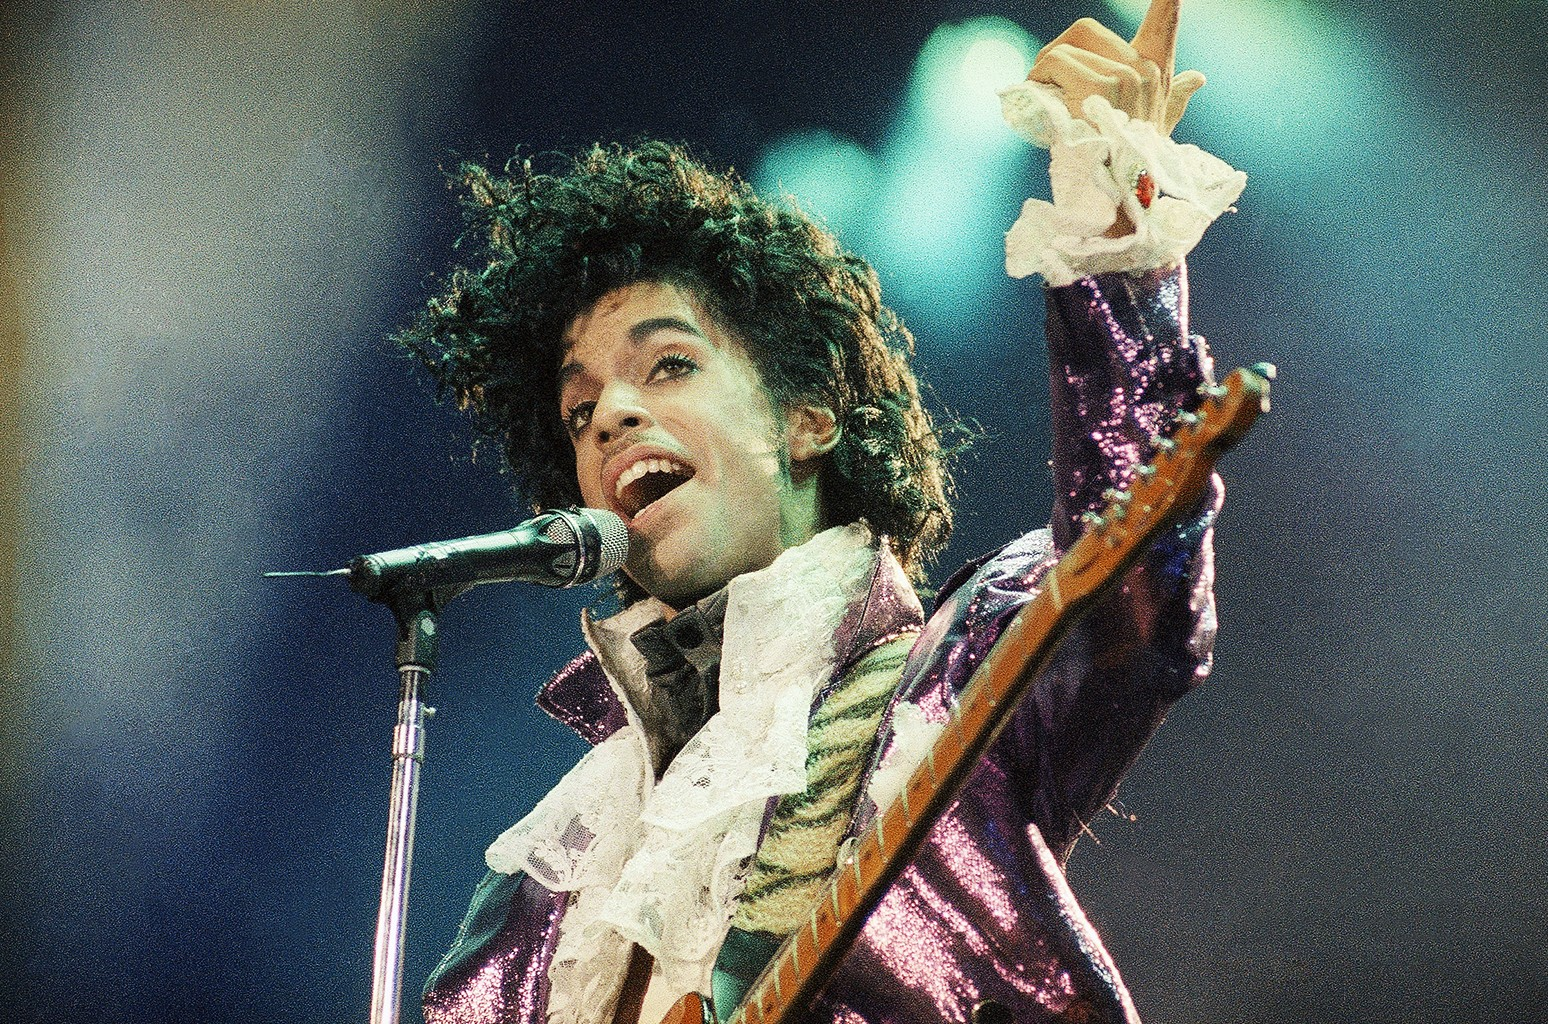 Prince performs on Feb. 18, 1986 at the Forum in Inglewood, Calif.